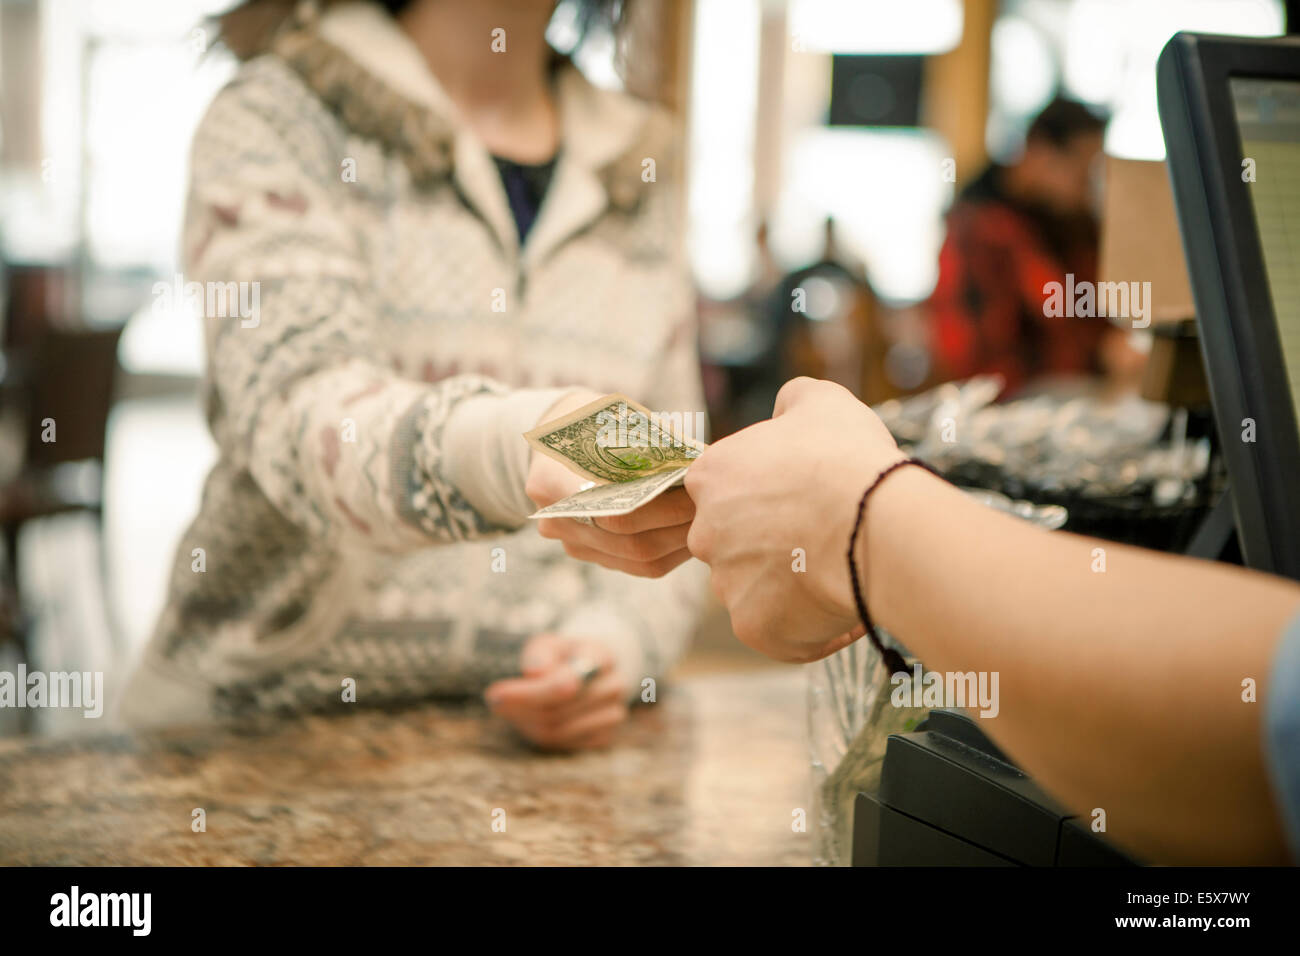 Female customer handing payment to waiter over cafe counter - Stock Image